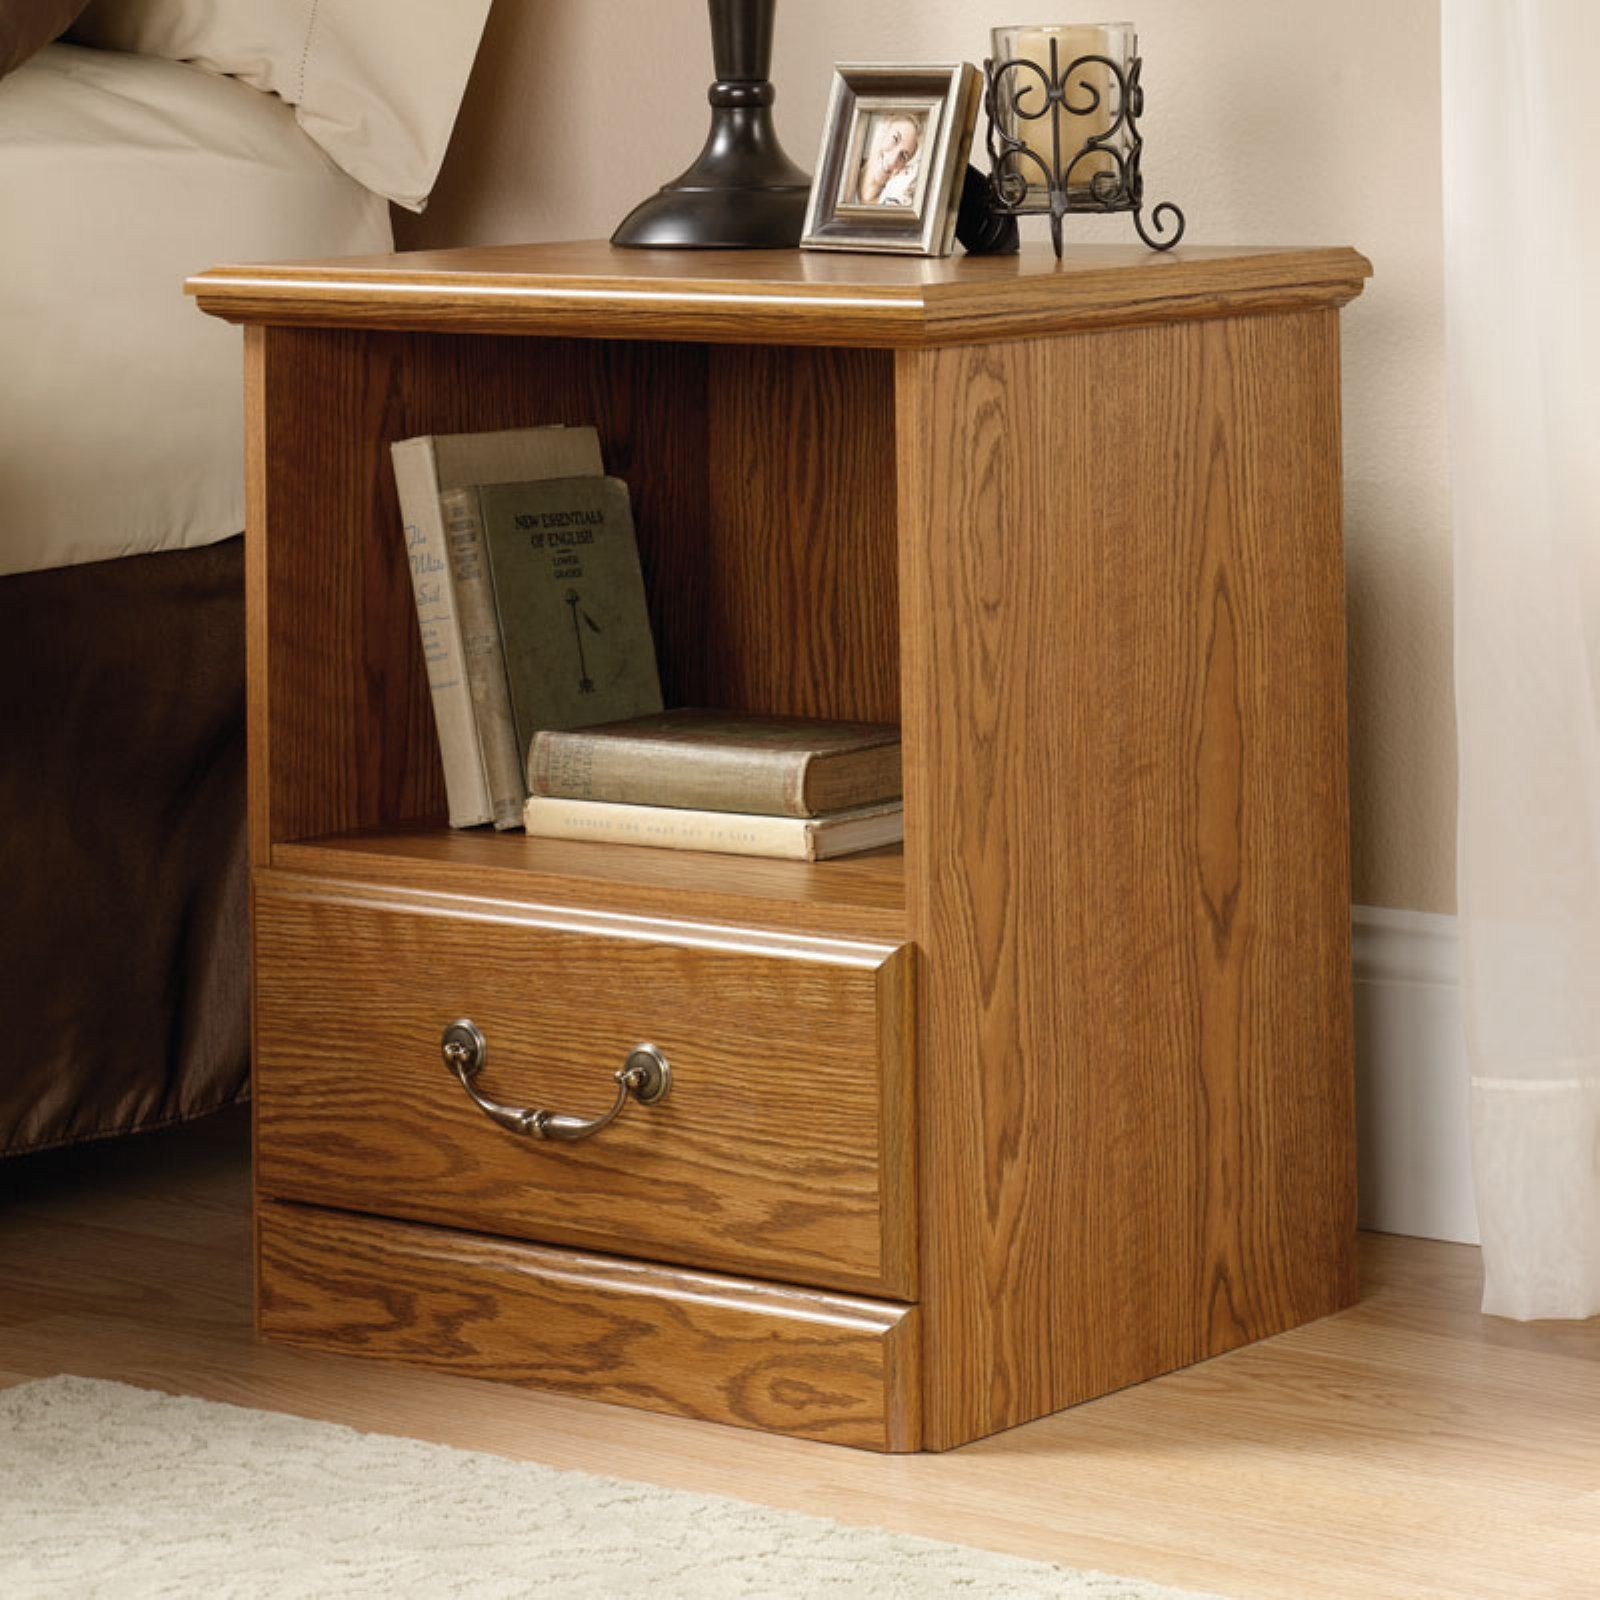 Foresthills Bedroom Large2: Sauder Orchard Hills Nightstand